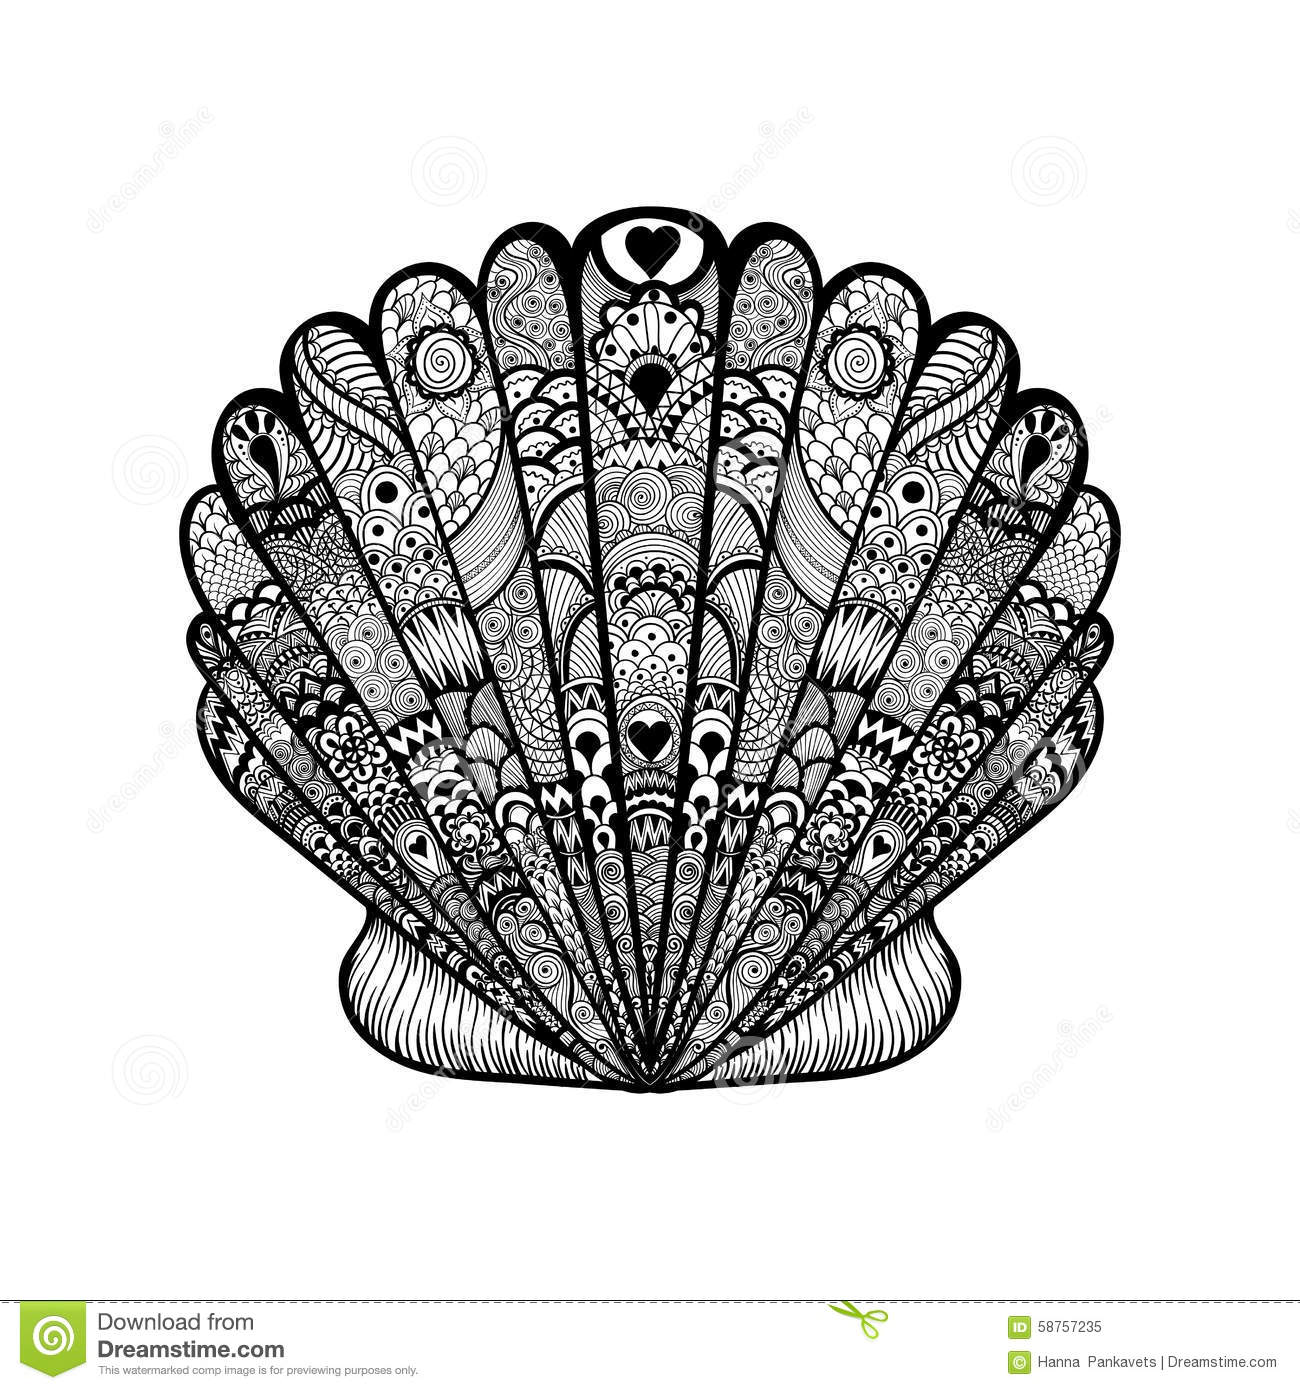 03e45044e Zentangle stylized black sea shell. Hand Drawn doodle vector illustration.  Sketch for tattoo or makhenda. Seashell collection. Ocean life.